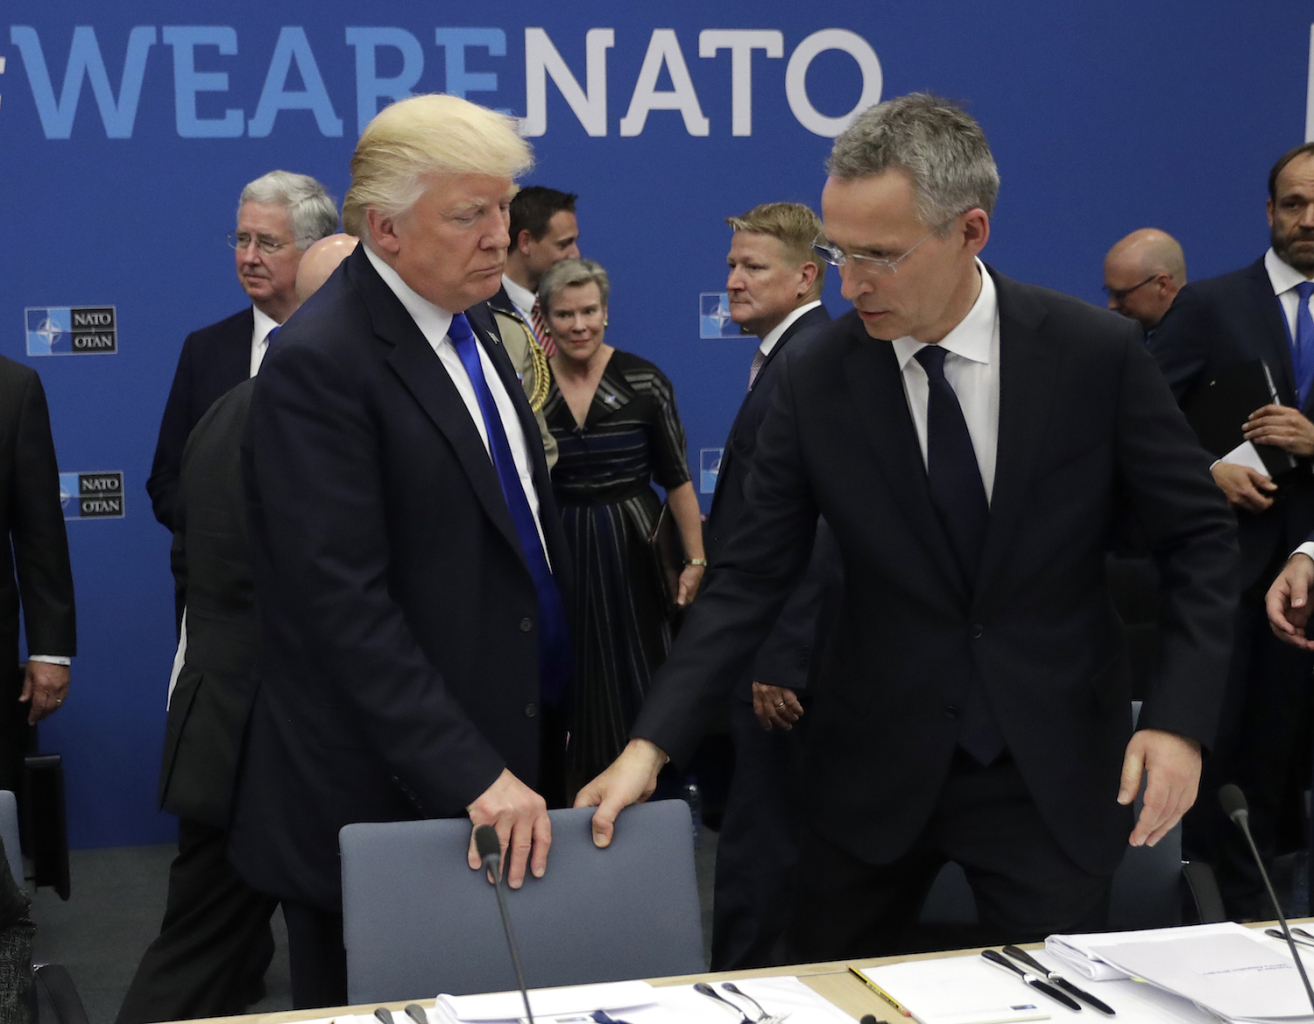 Trump and Stoltenberg